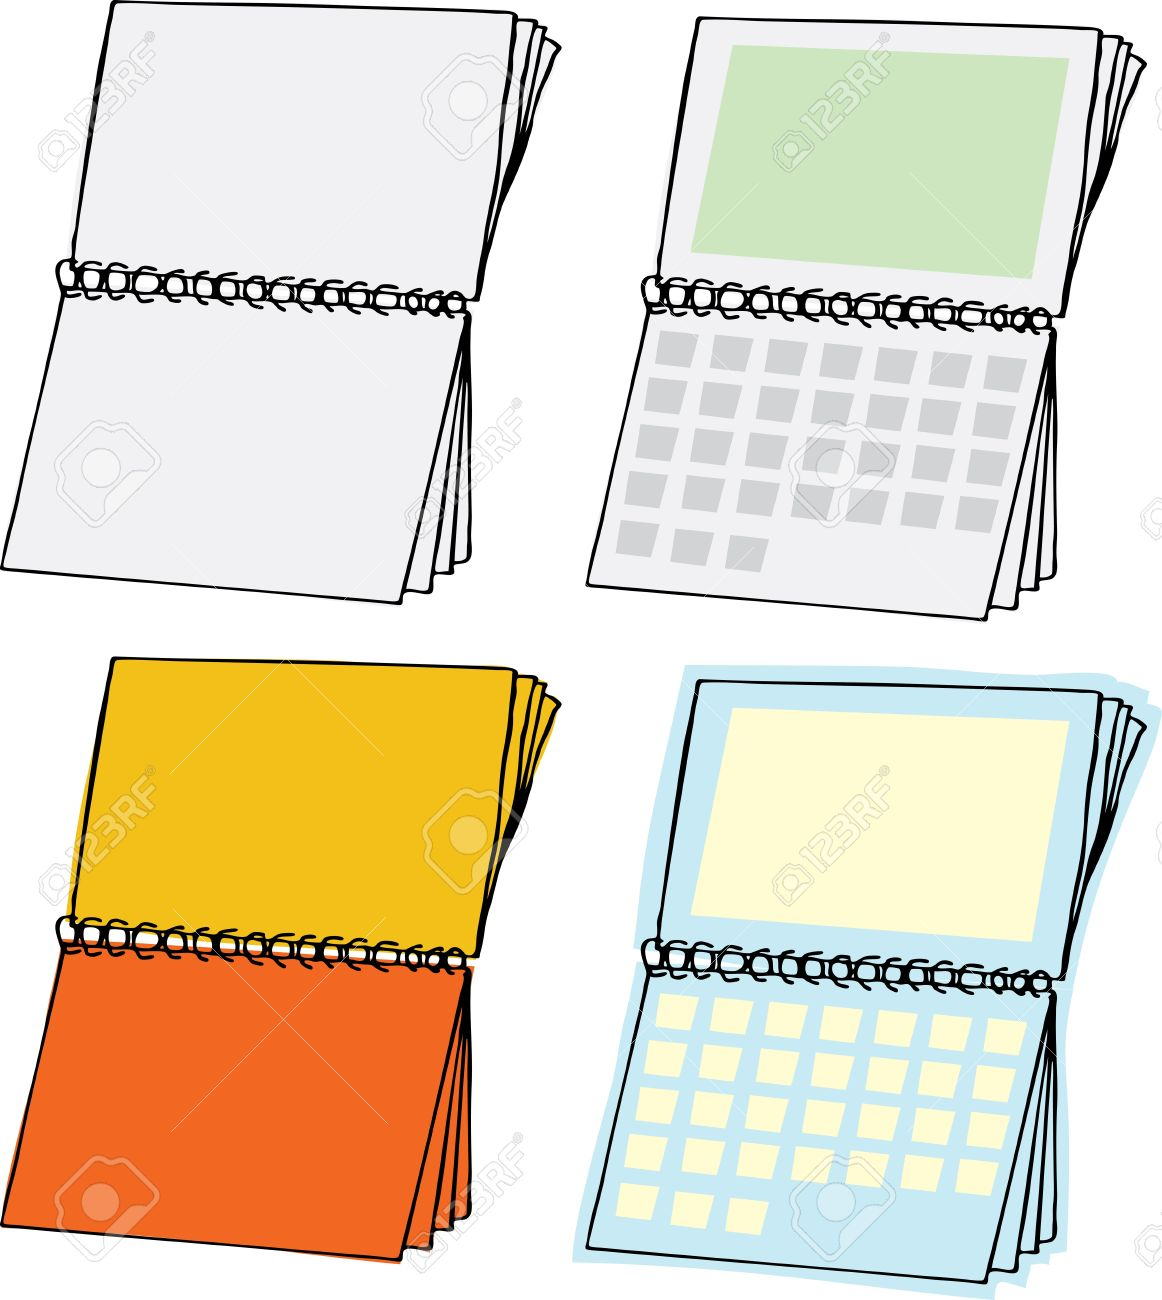 Four Types Of Blank Spiral Bound Calendars Royalty Free Cliparts ...